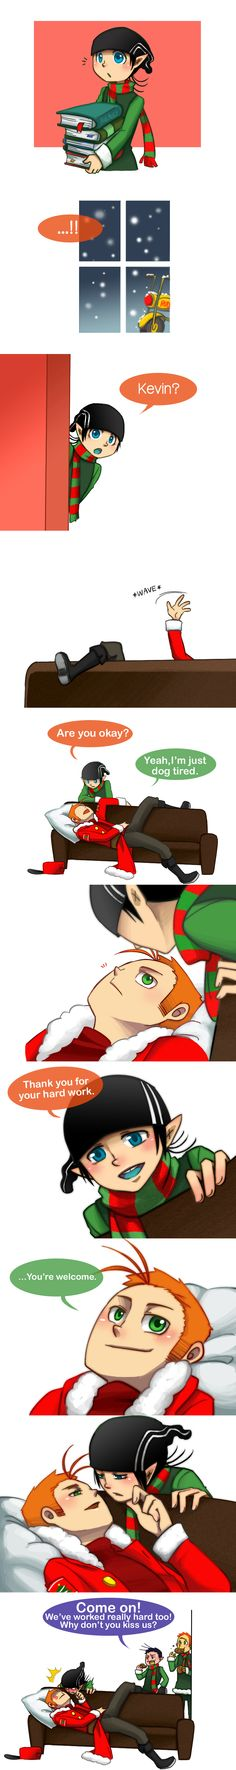 KevEdd After Xmas Kiss by aulauly7 on DeviantArt // Ed Edd n Eddy cute yaoi